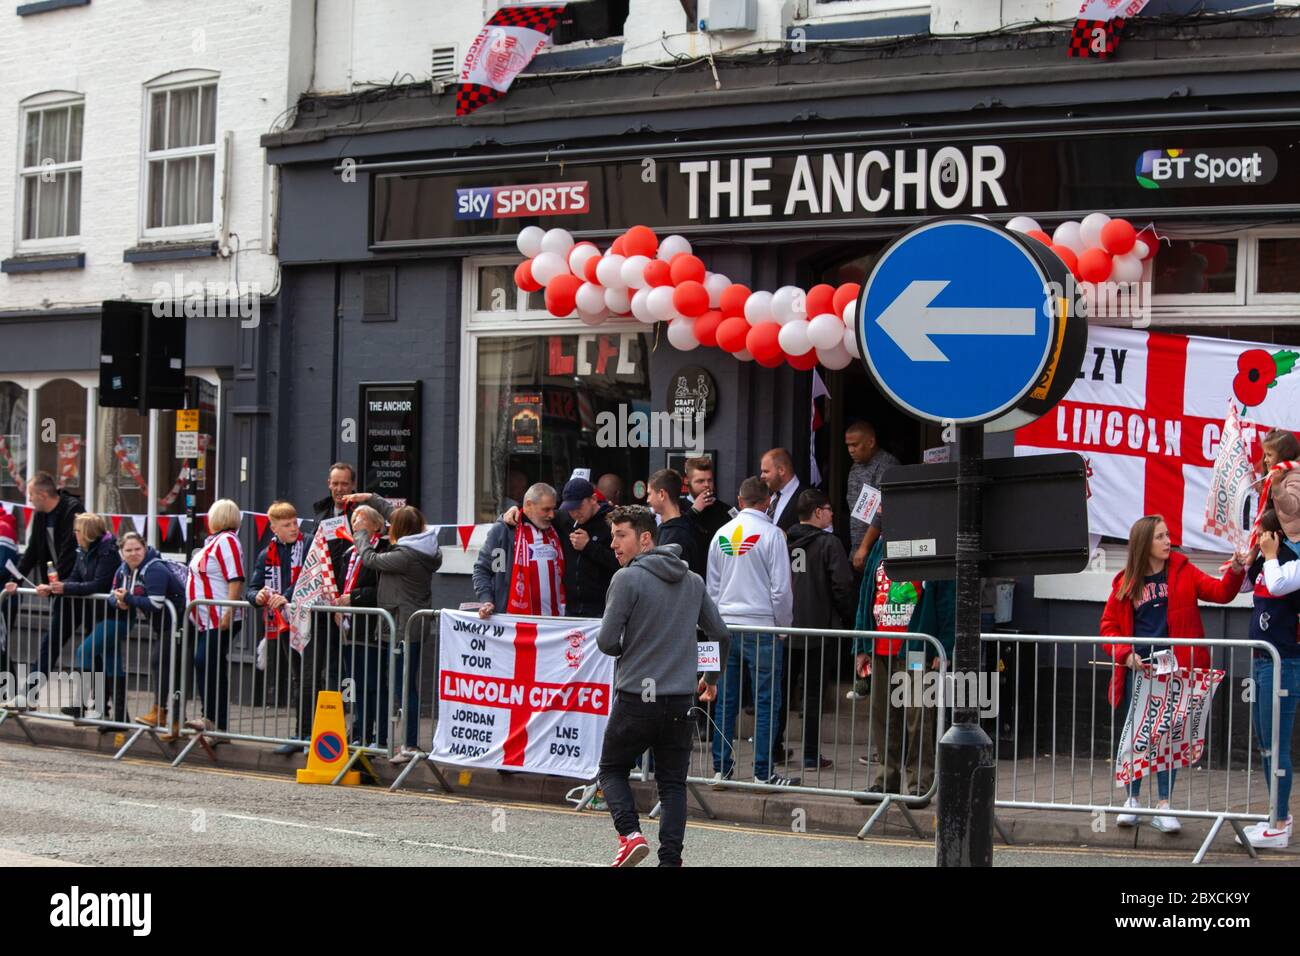 2018/19 Lincoln City Bus tour, promotion bus tour 2019, Imps A One thousands lined the streets, celebration, Imp-ressive Lincoln City., Lincoln FC. Stock Photo